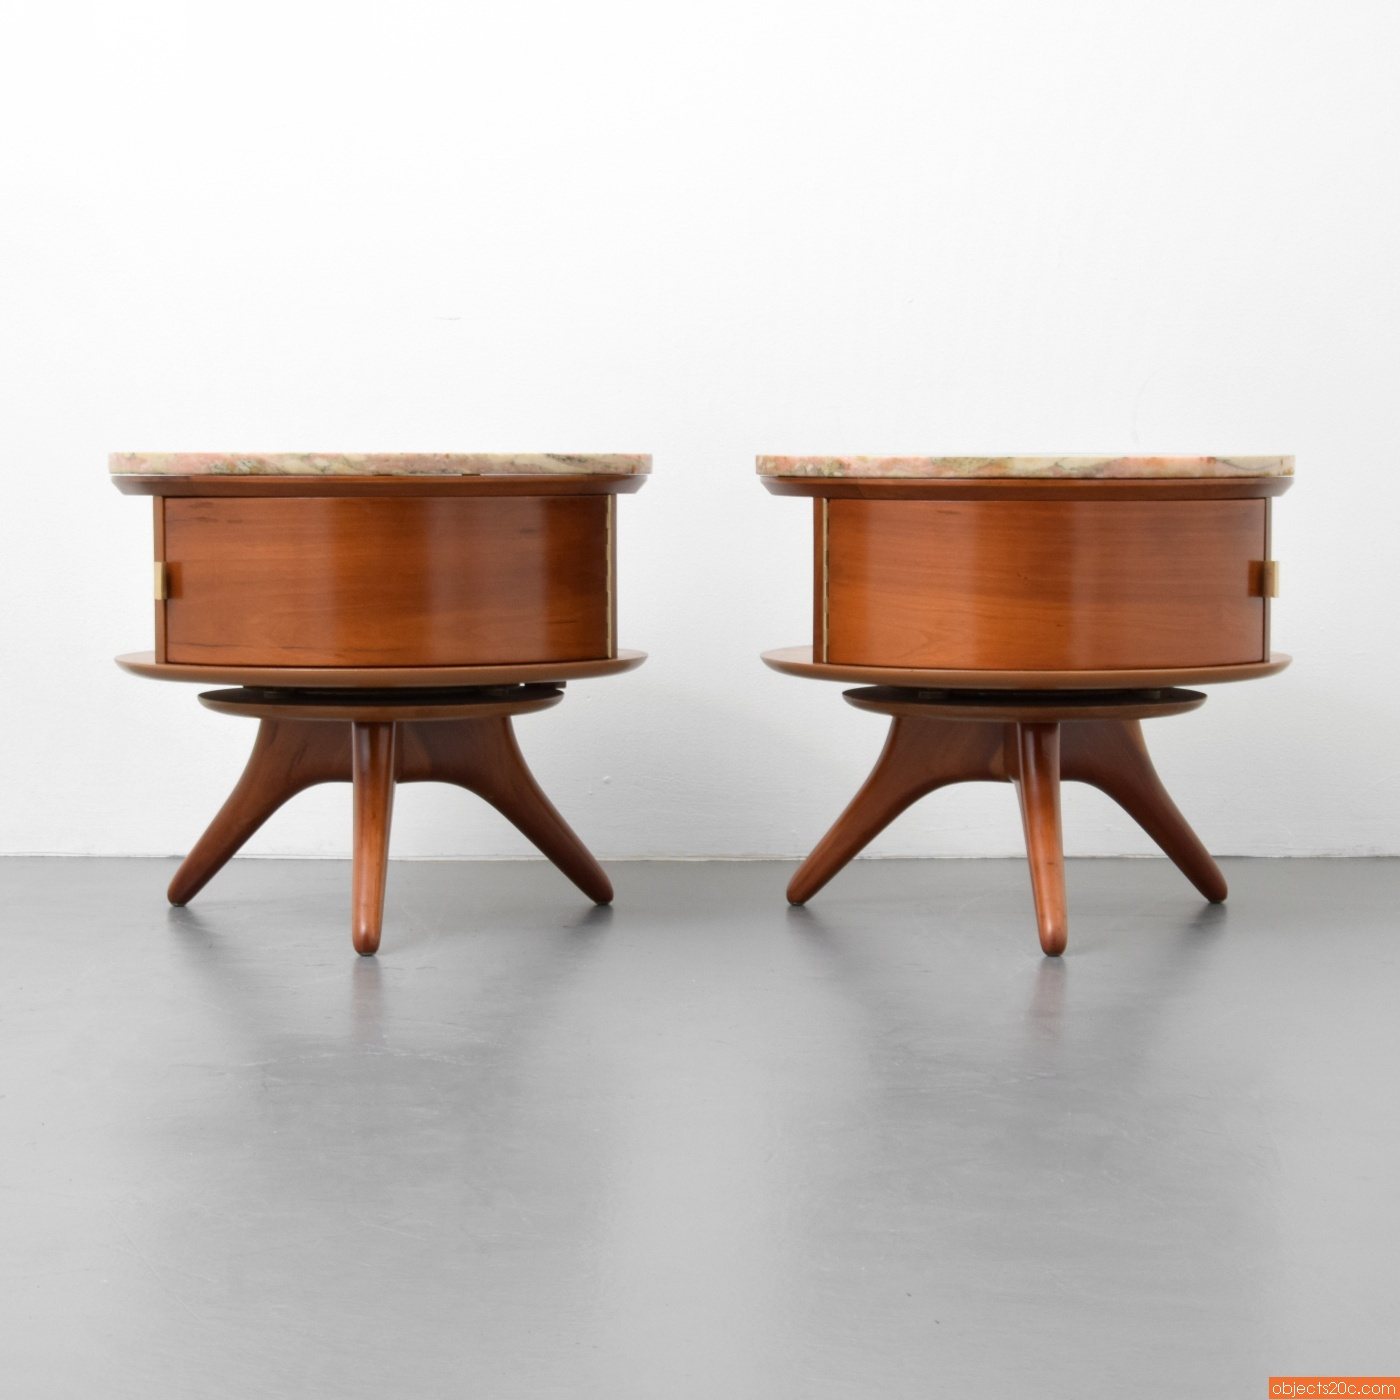 Pair Of Rare U0026 Early Vladimir Kagan #3421 Nightstands/End Tables (SOLD)